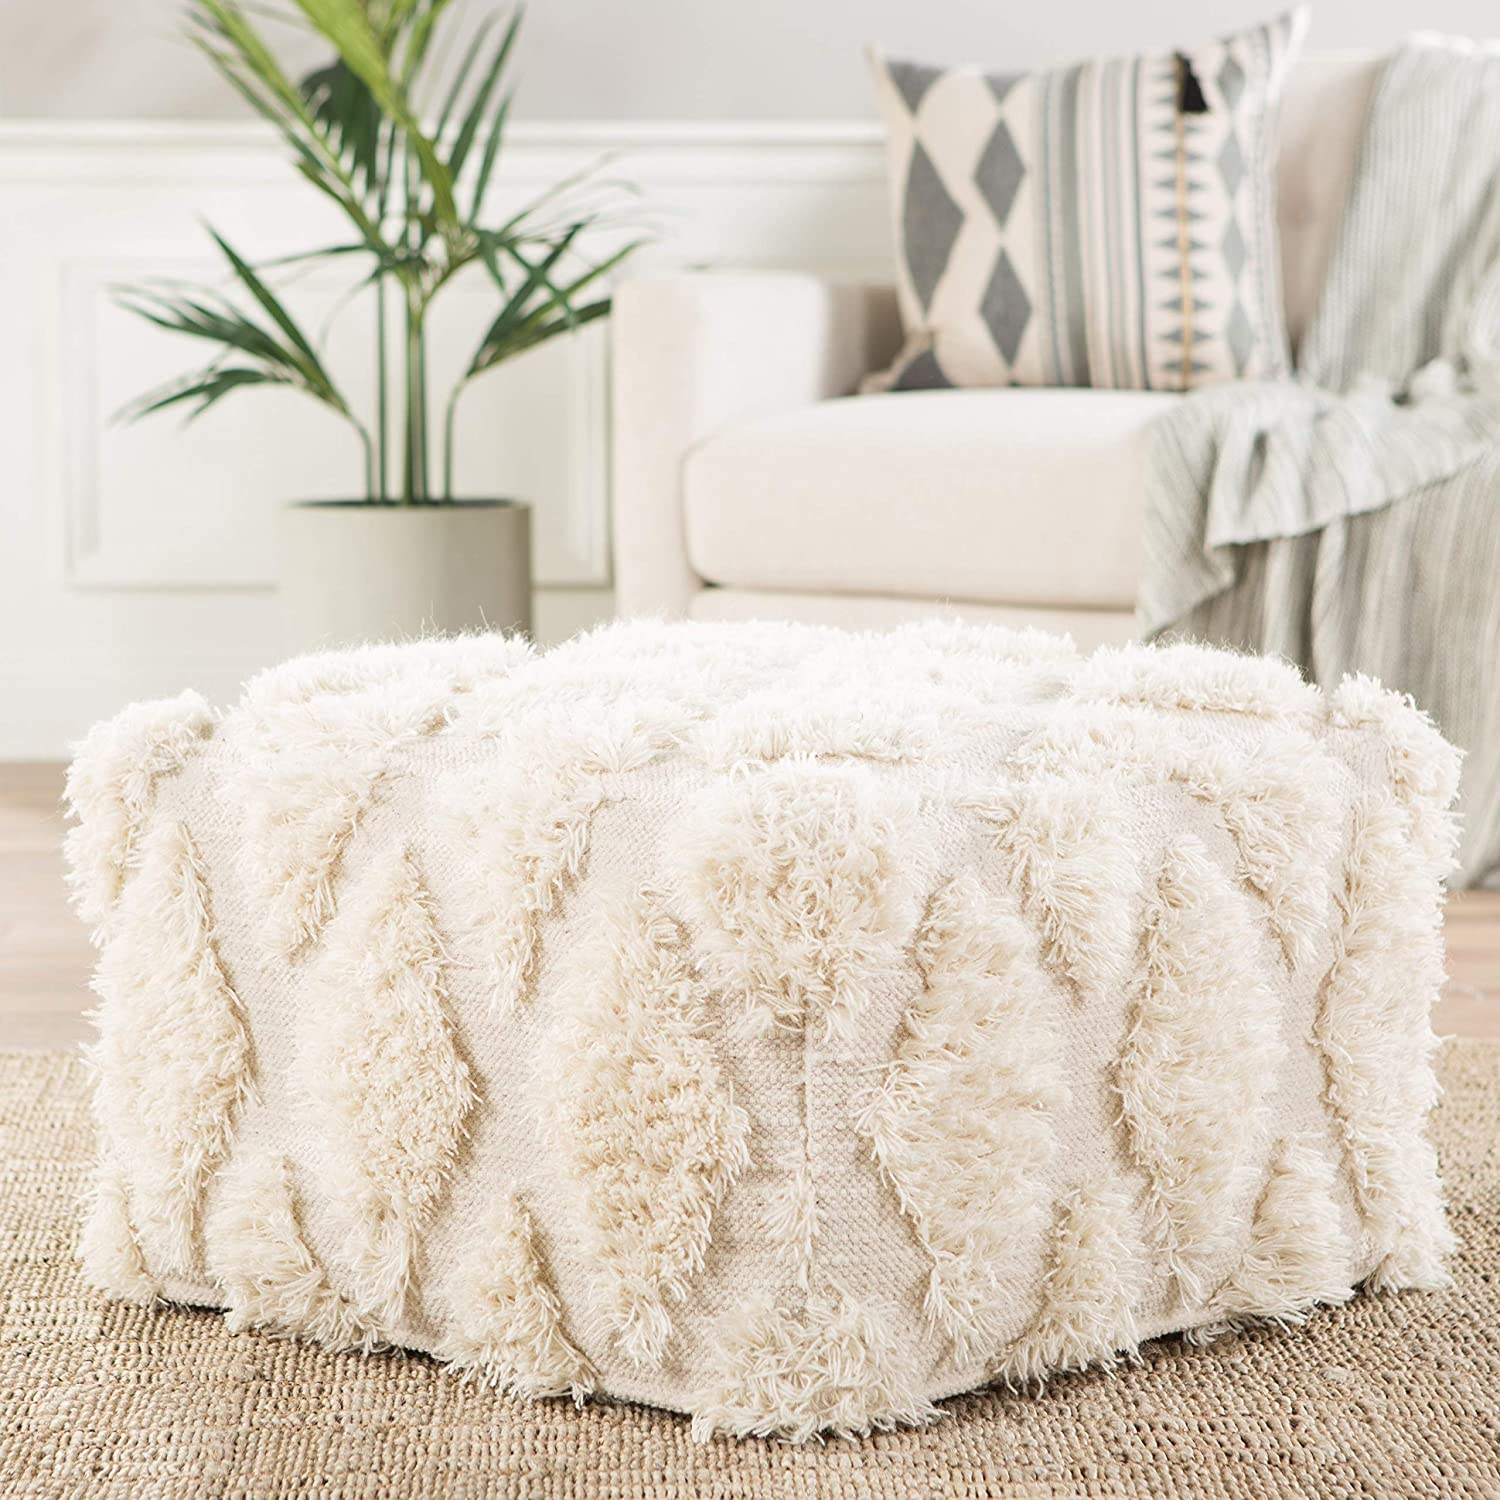 Unknown1 Ivory Geometric Seasonal Wrap Introduction Square Bohemian In a popularity Textured Eclectic Pouf